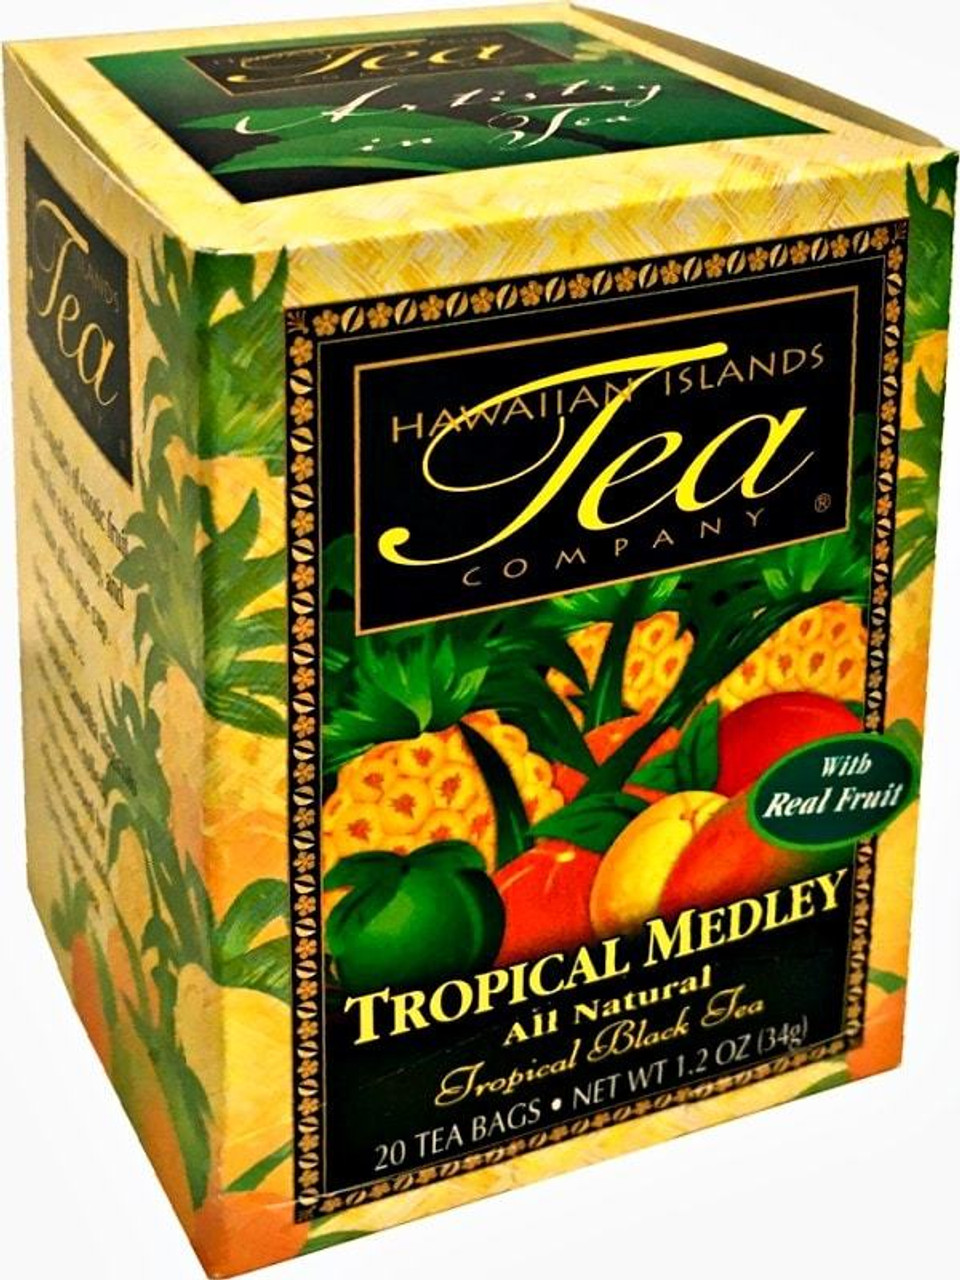 Tropical Medley Tea